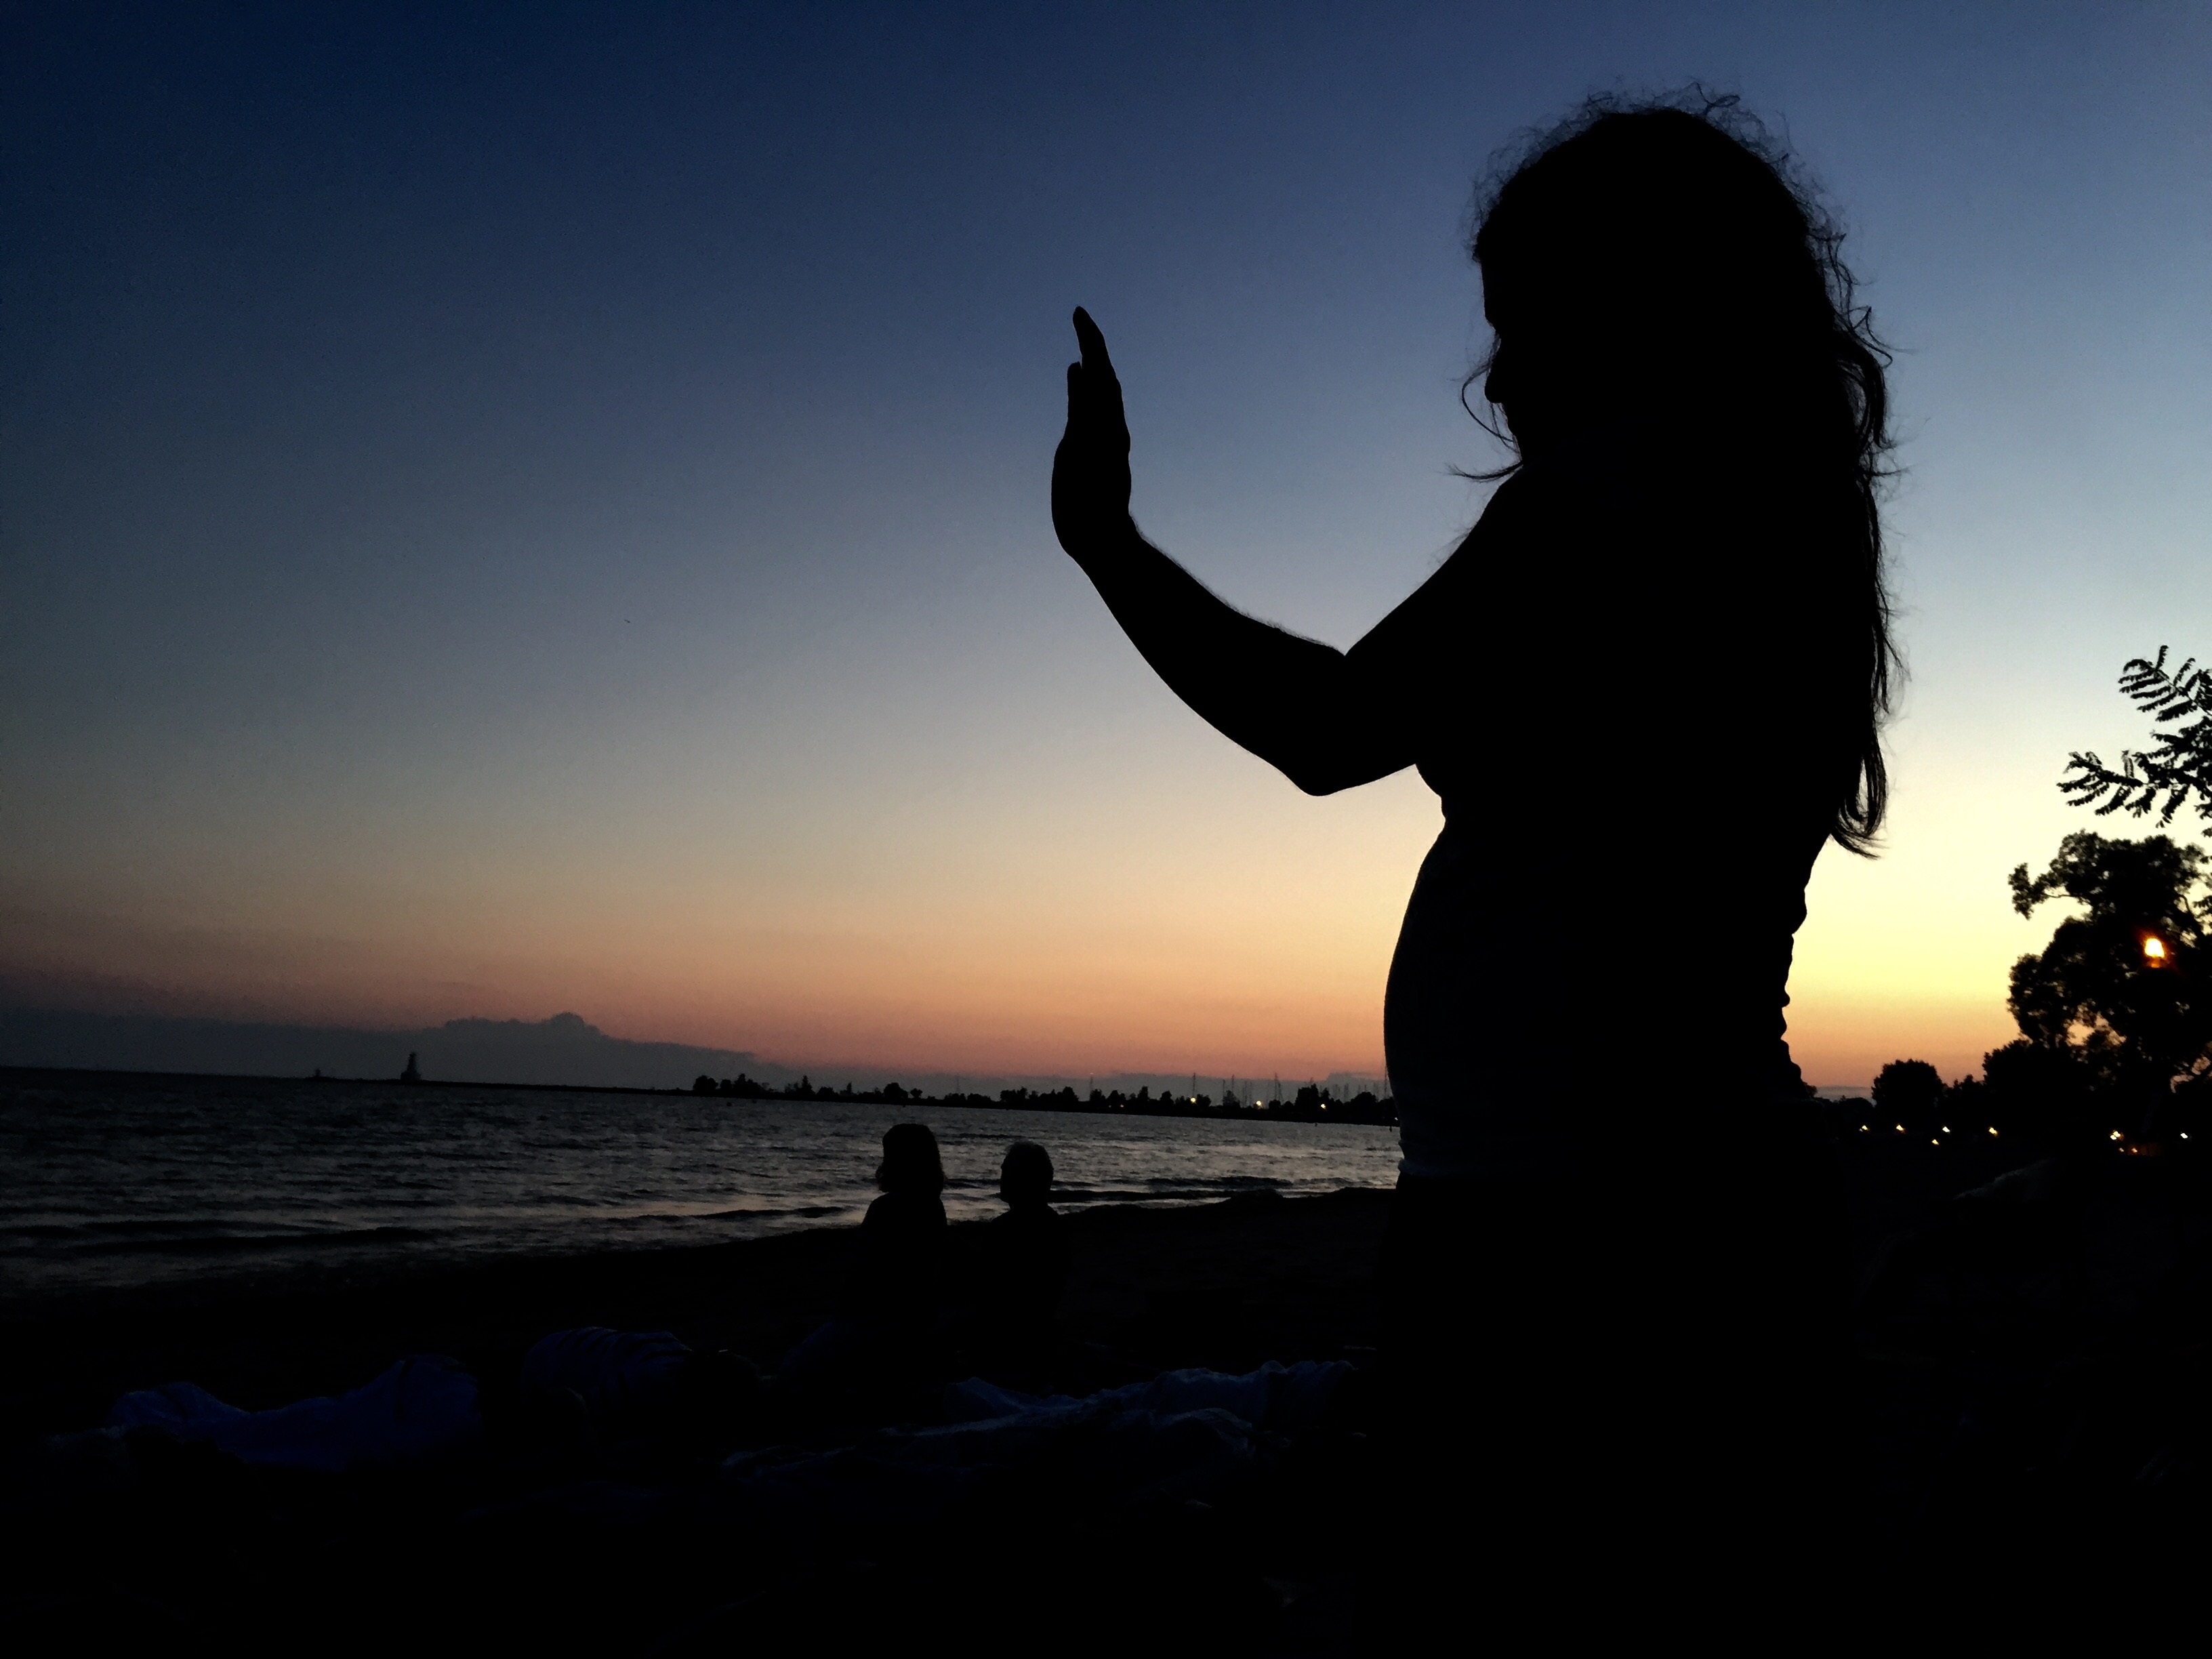 Kimmie McBride of Organic Spirit leading a group full moon meditation on the beach at Lake House.